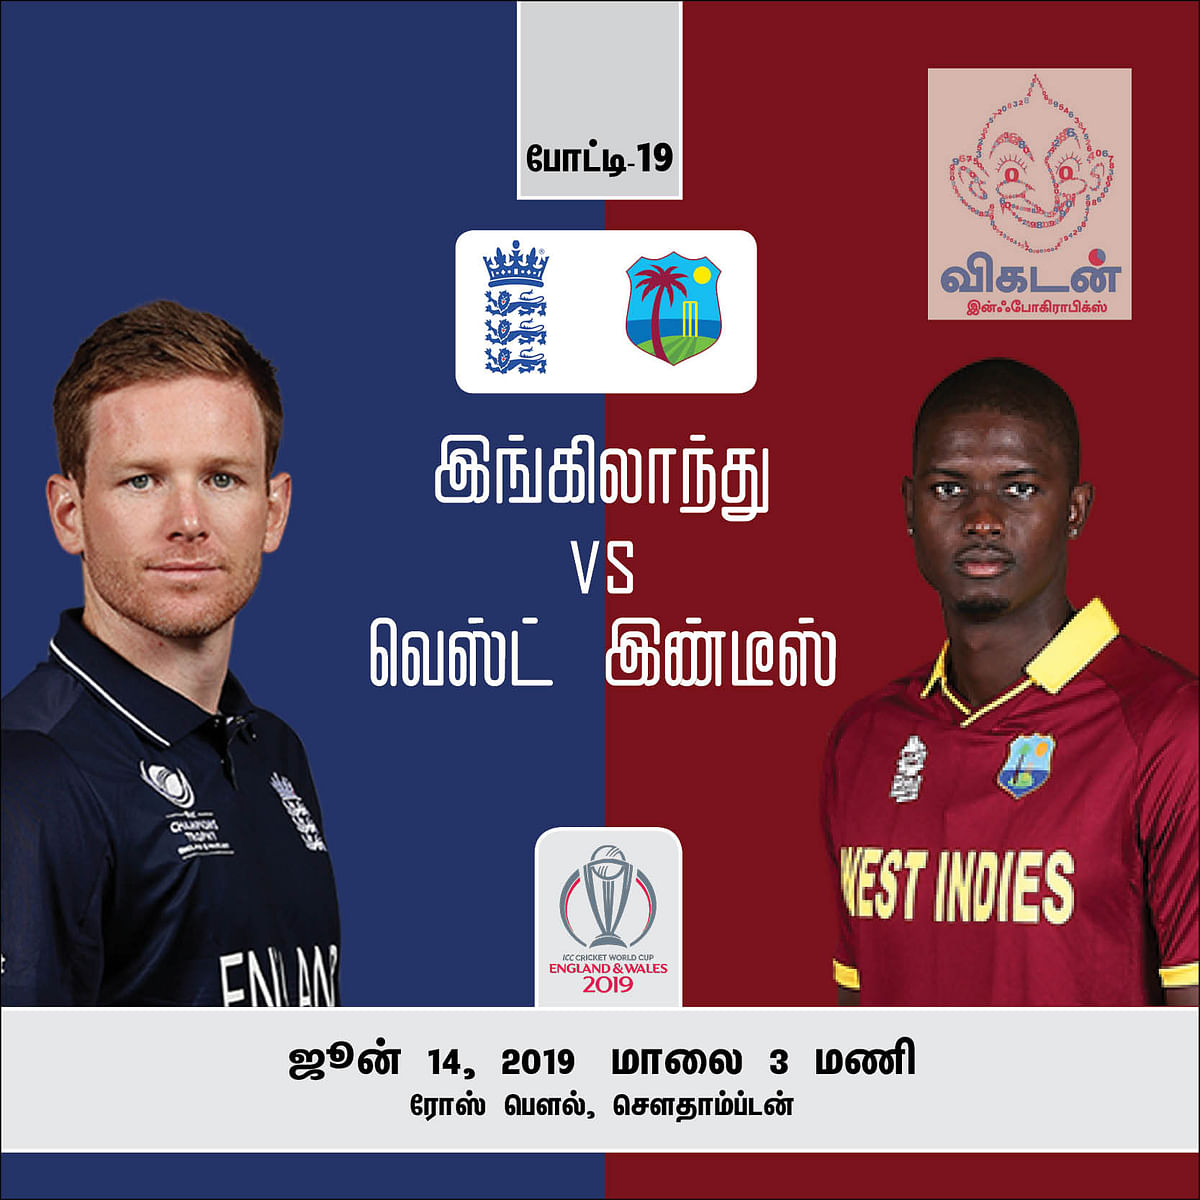 England Vs West Indies Match Preview